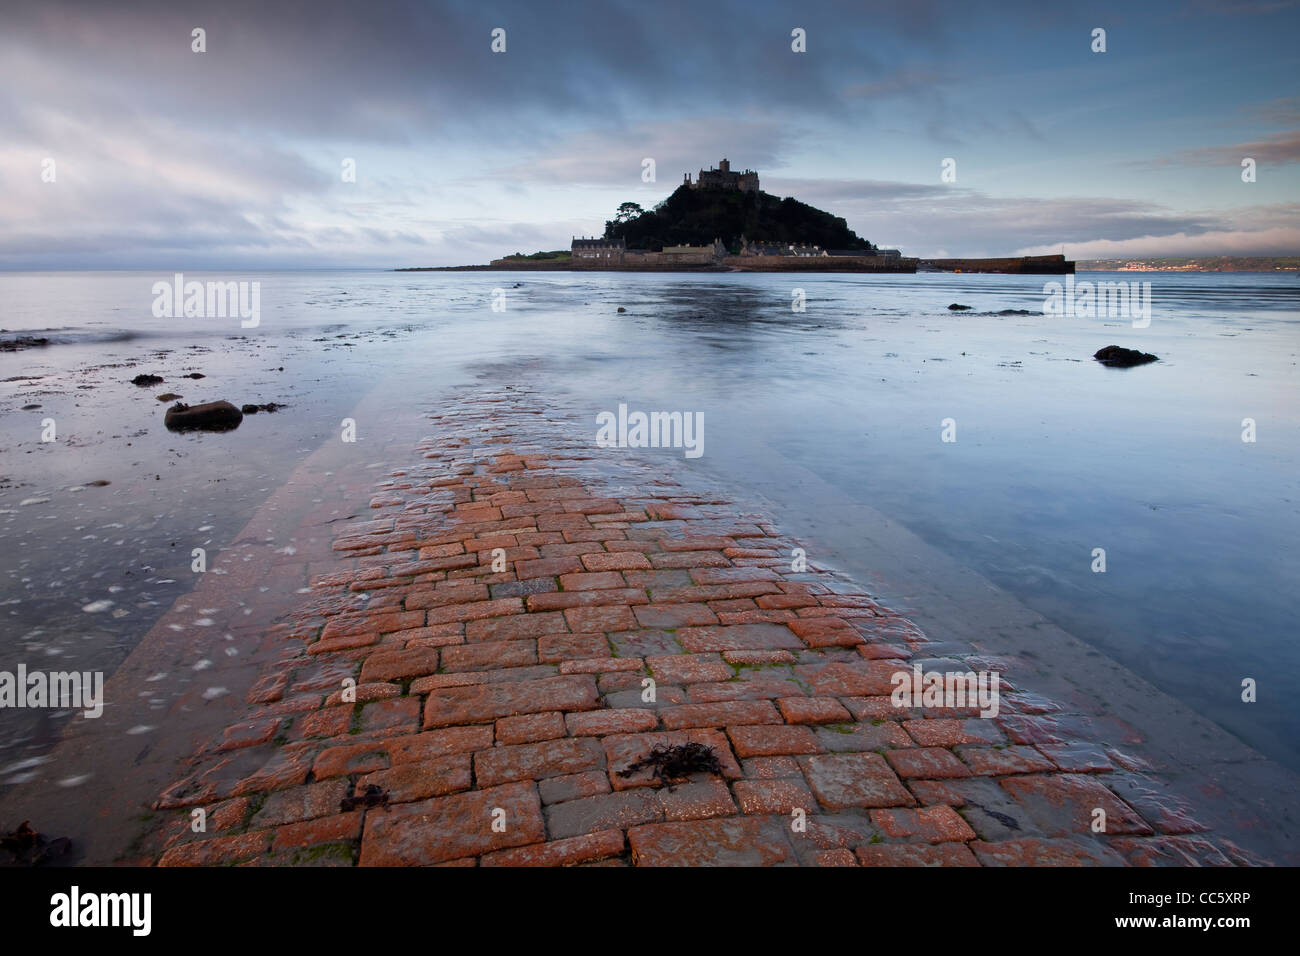 St Michael's Mount and the causeway in Cornwall, England, UK - Stock Image